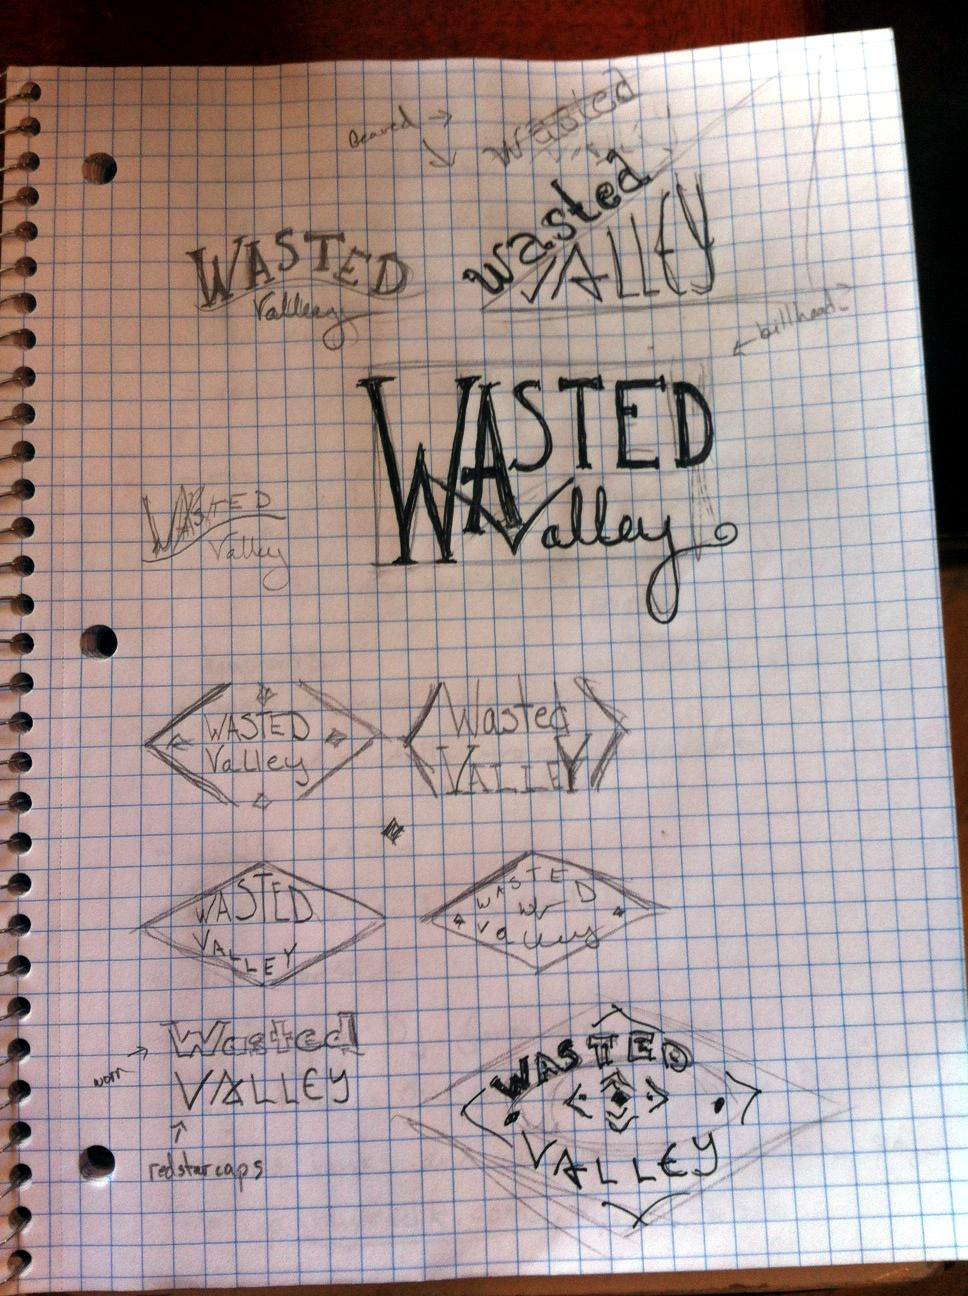 Wasted Valley Logo - image 3 - student project